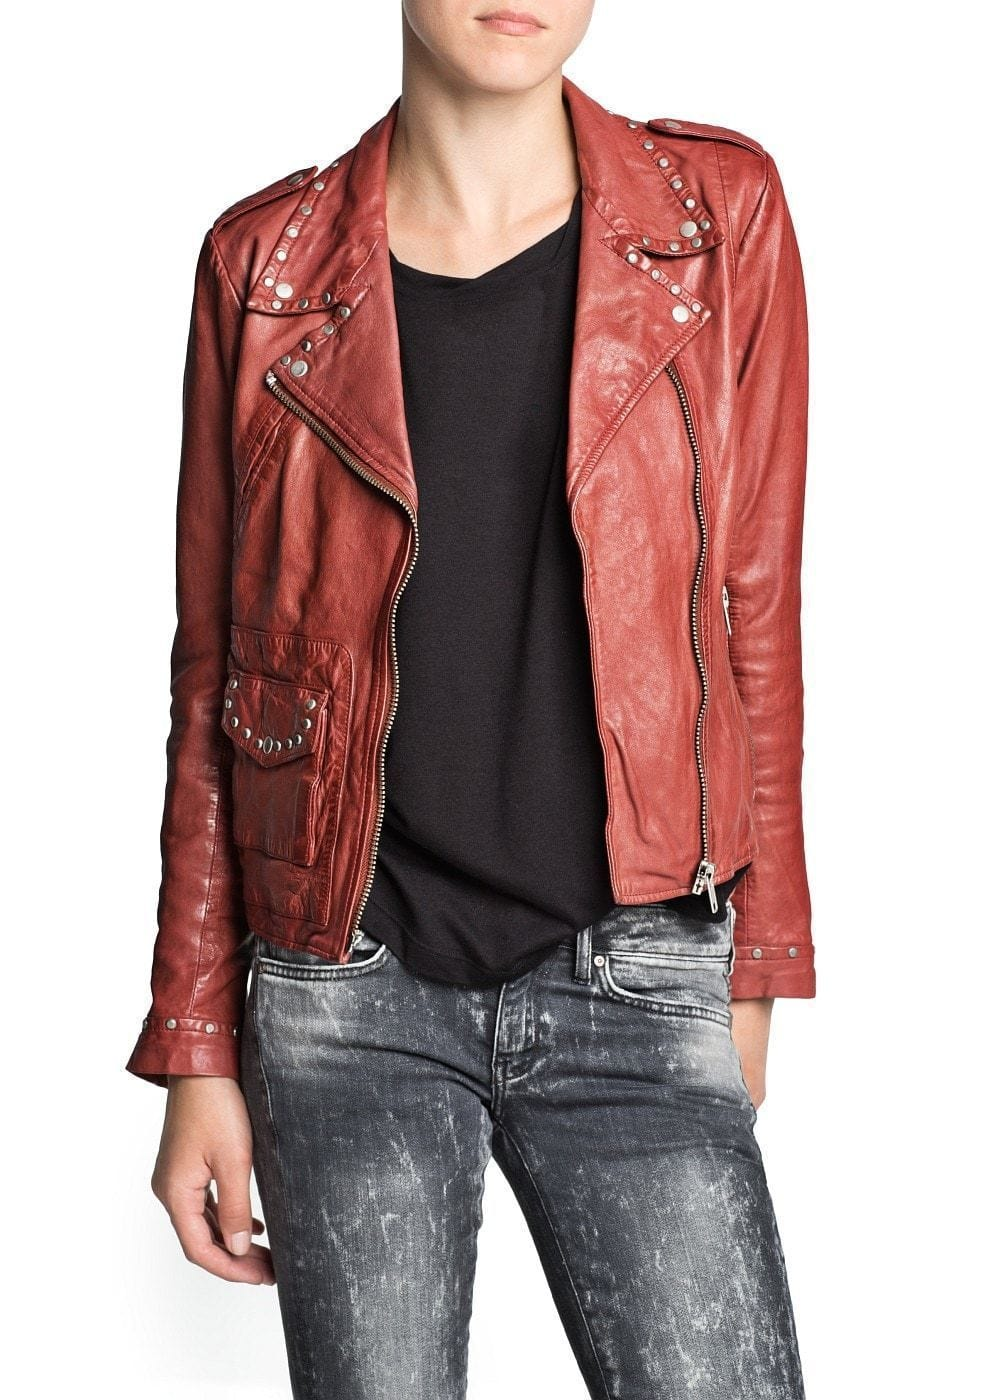 leather404 Clothing, Shoes & Accessories:women's Clothing:Coats & Jackets s Women Red Genuine Real Leather Jacket Silver Studded Front Zipper Brando Style